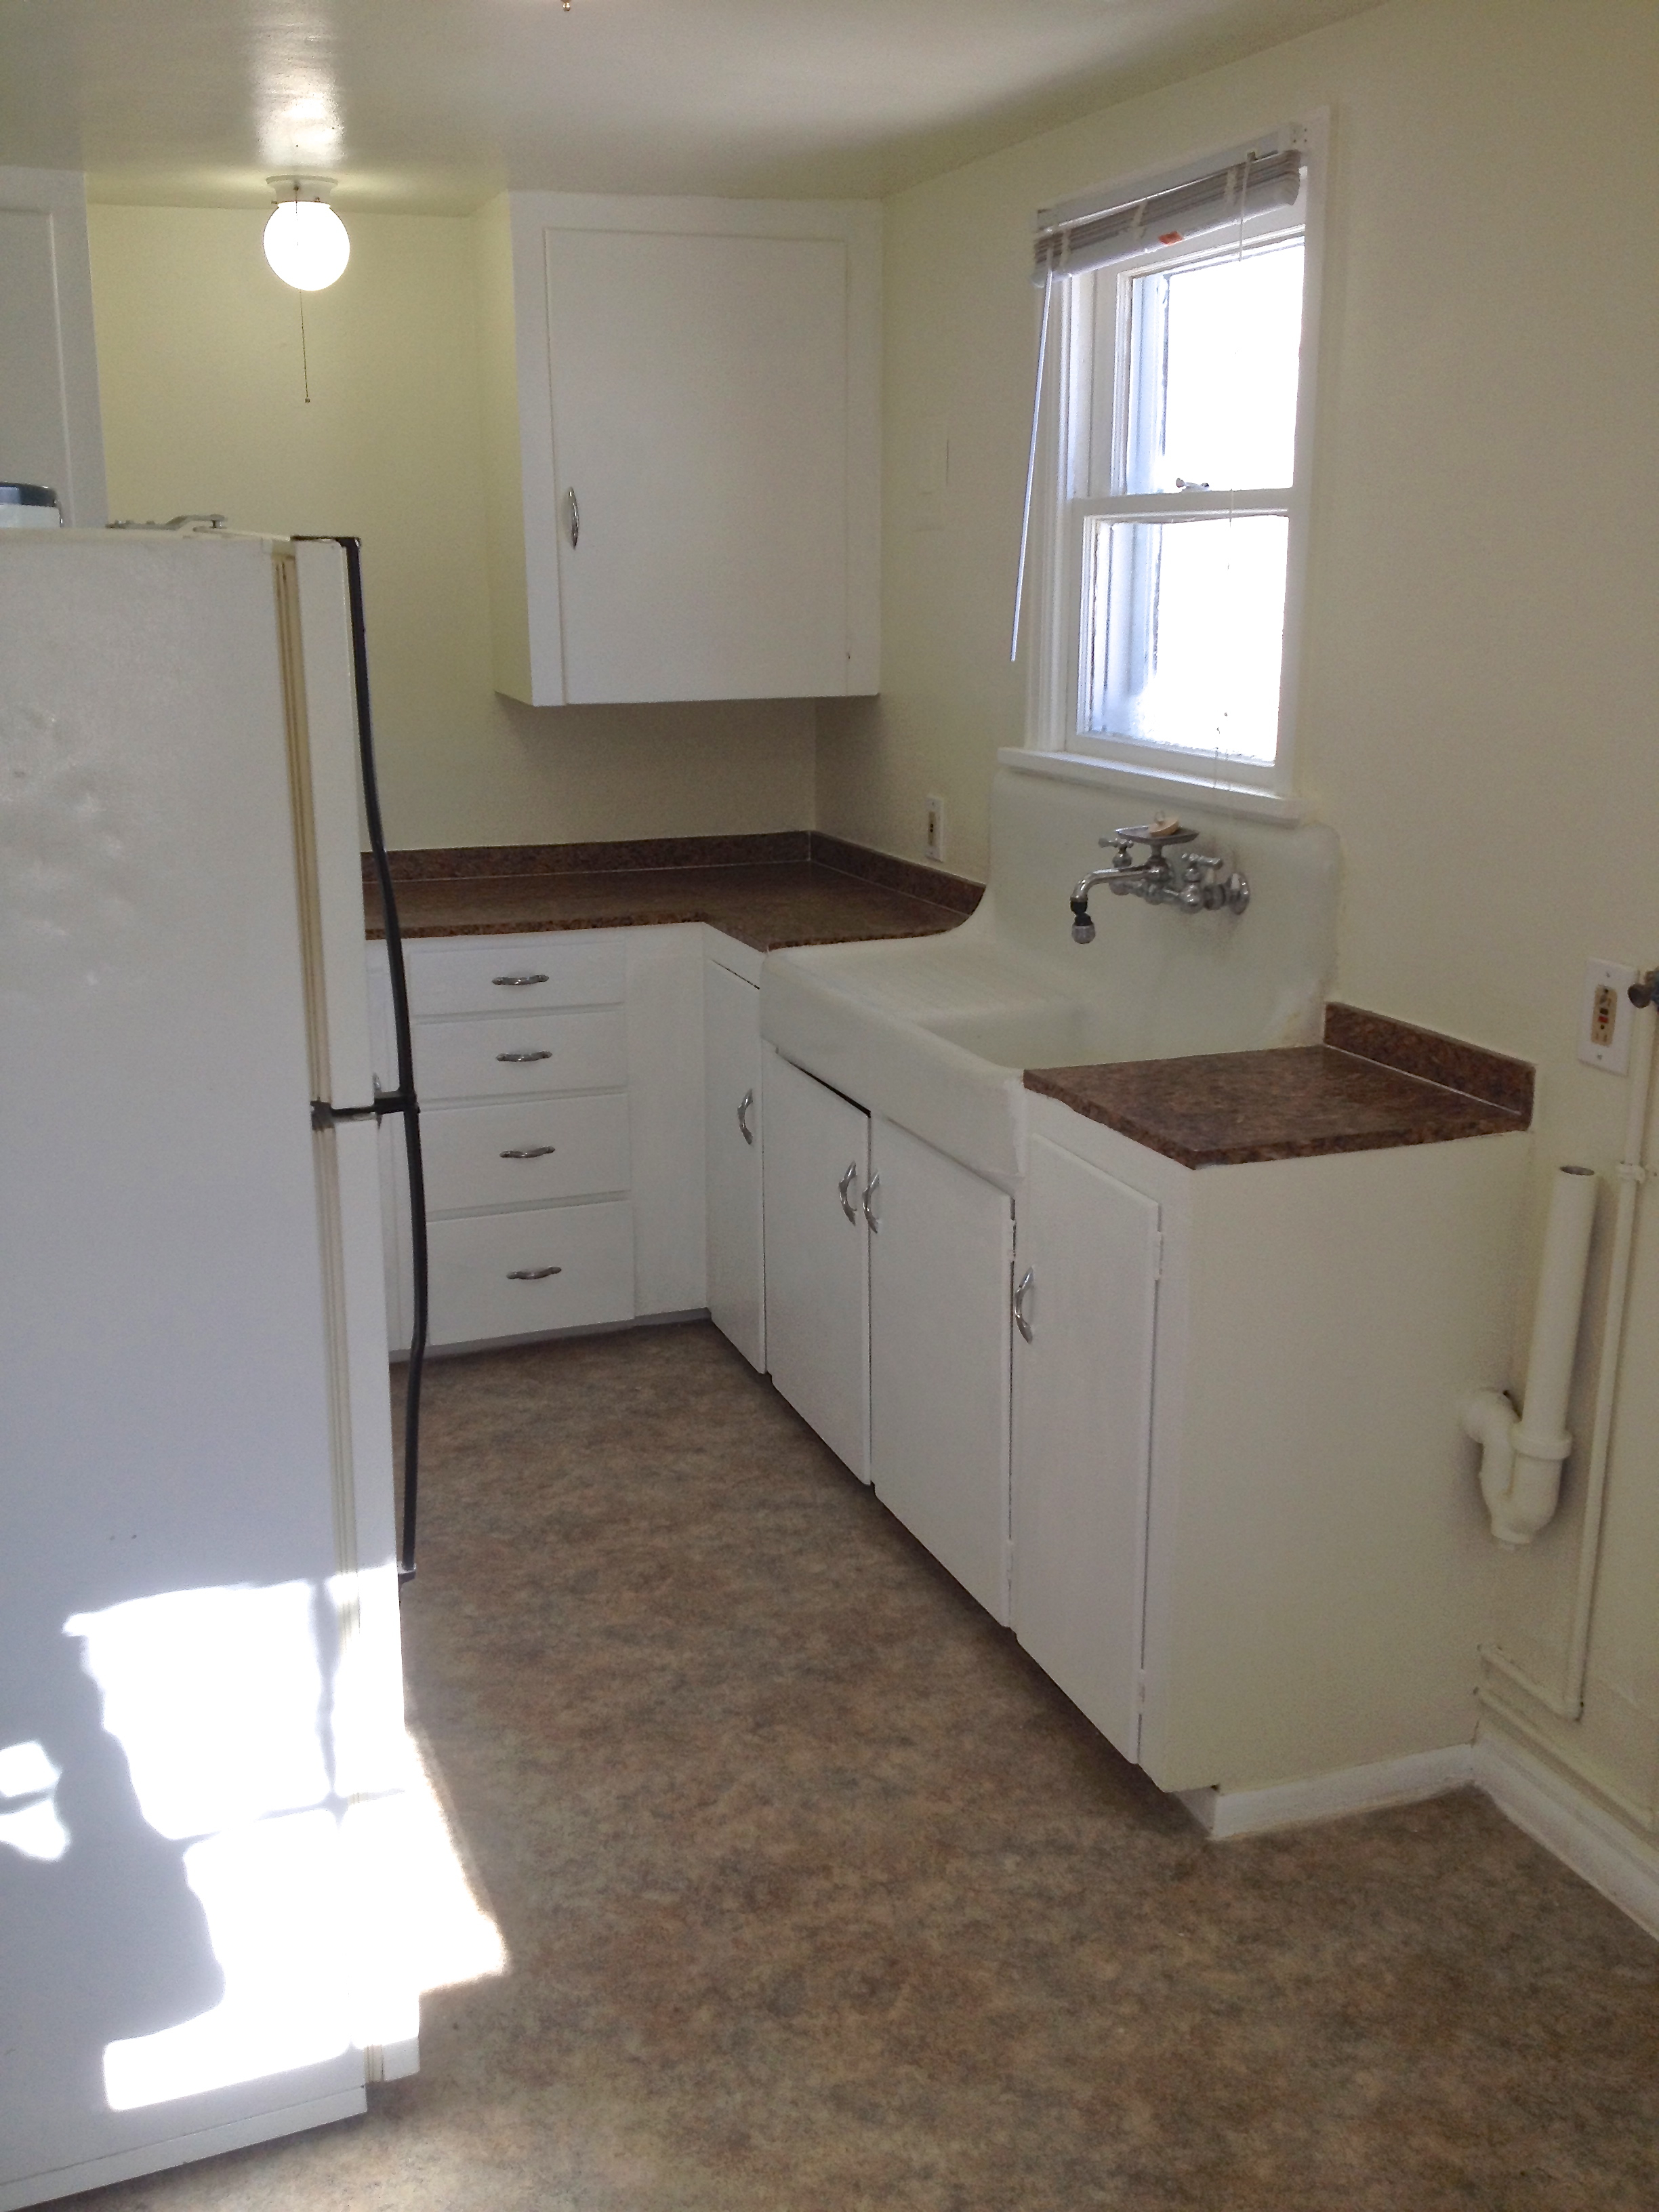 1 Bedroom 1 Bathroom House Dog Friendly Currently Rented 1010 Casper